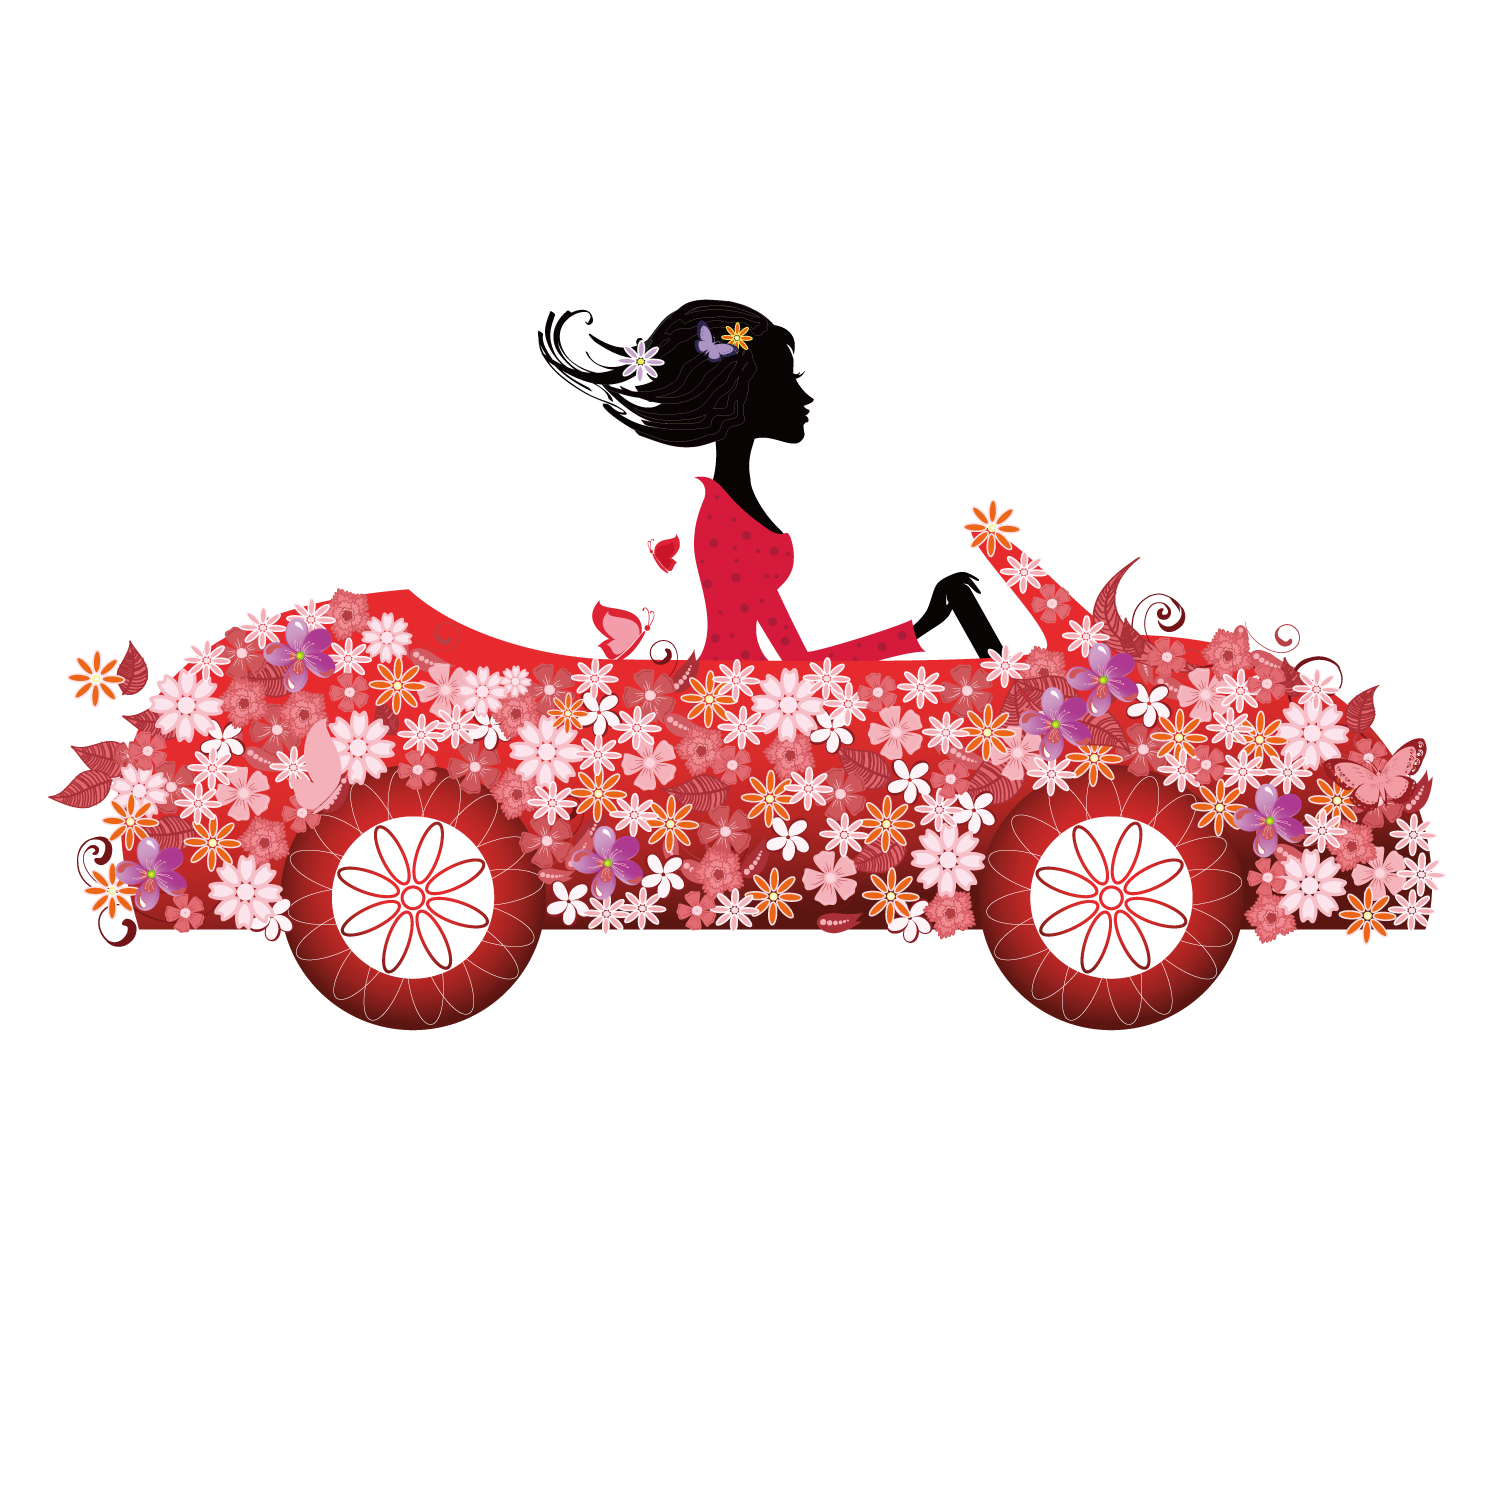 Driving clipart pink car. Royalty free clip art